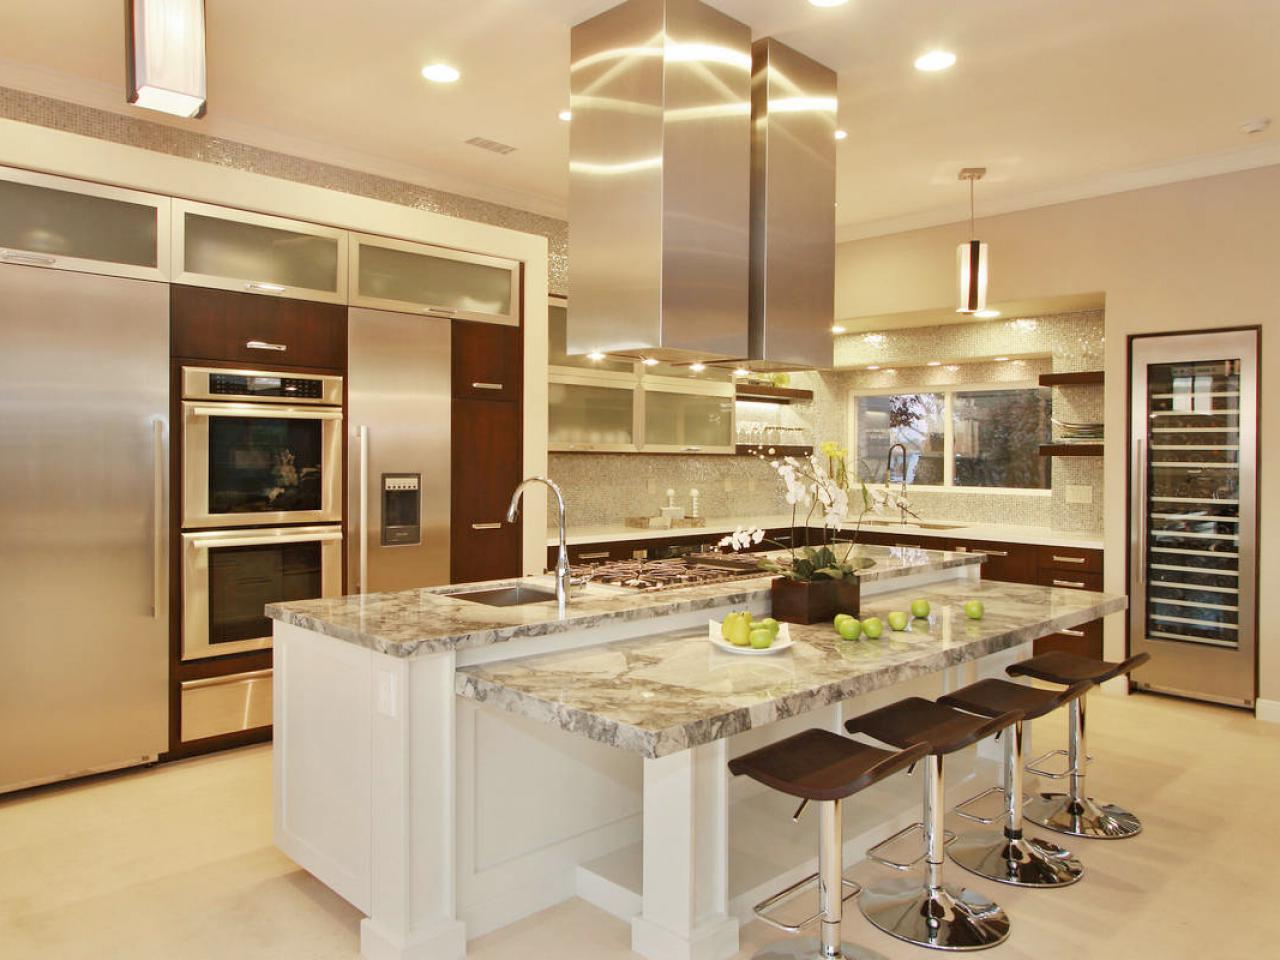 older home kitchen remodeling ideas stainless appliances pictures